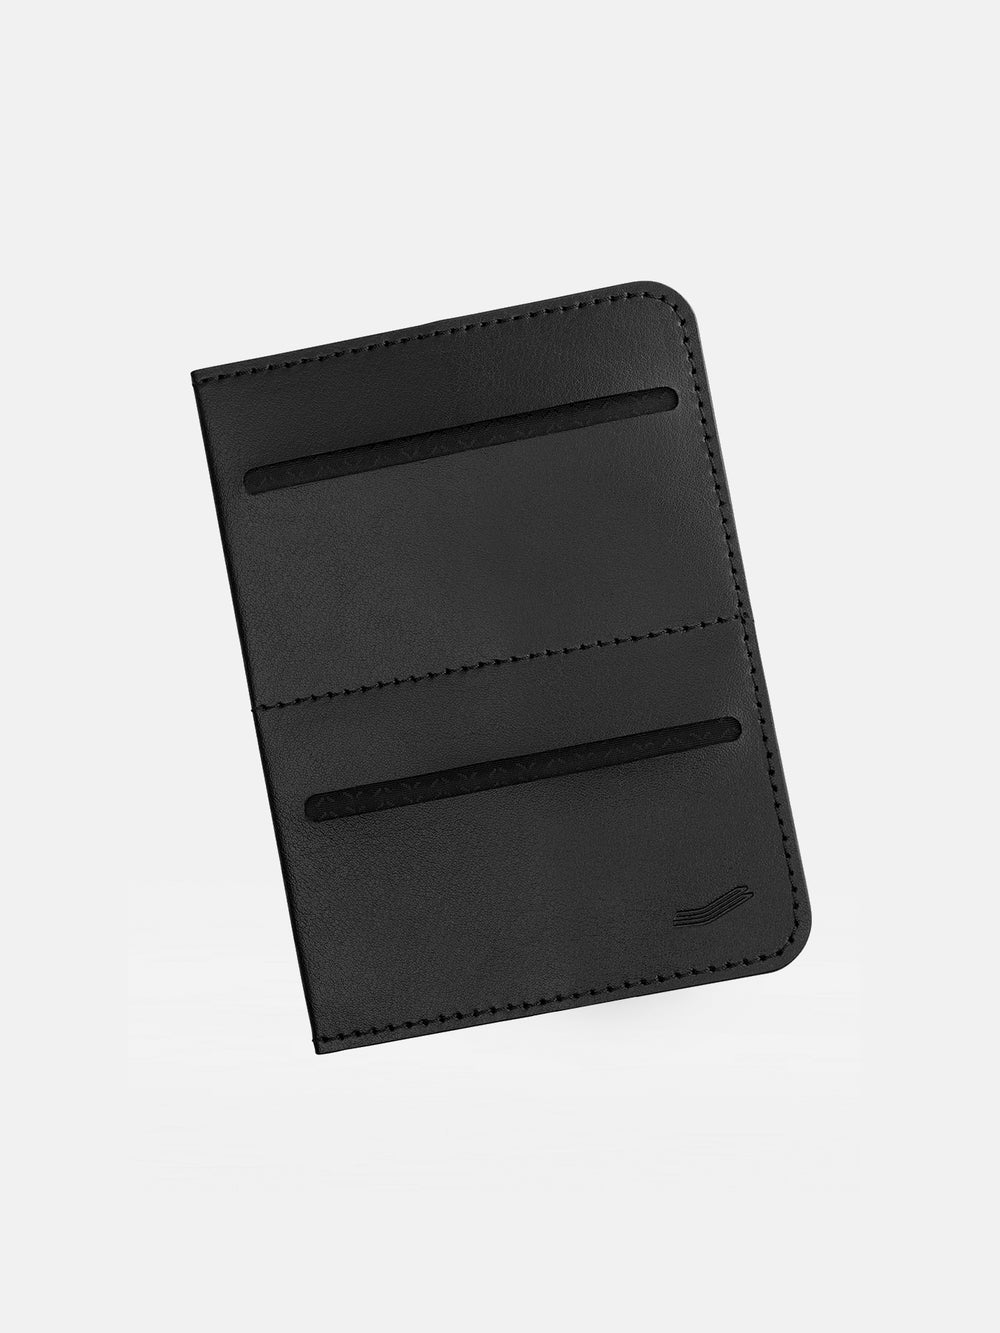 avant passport protector in italian black leather